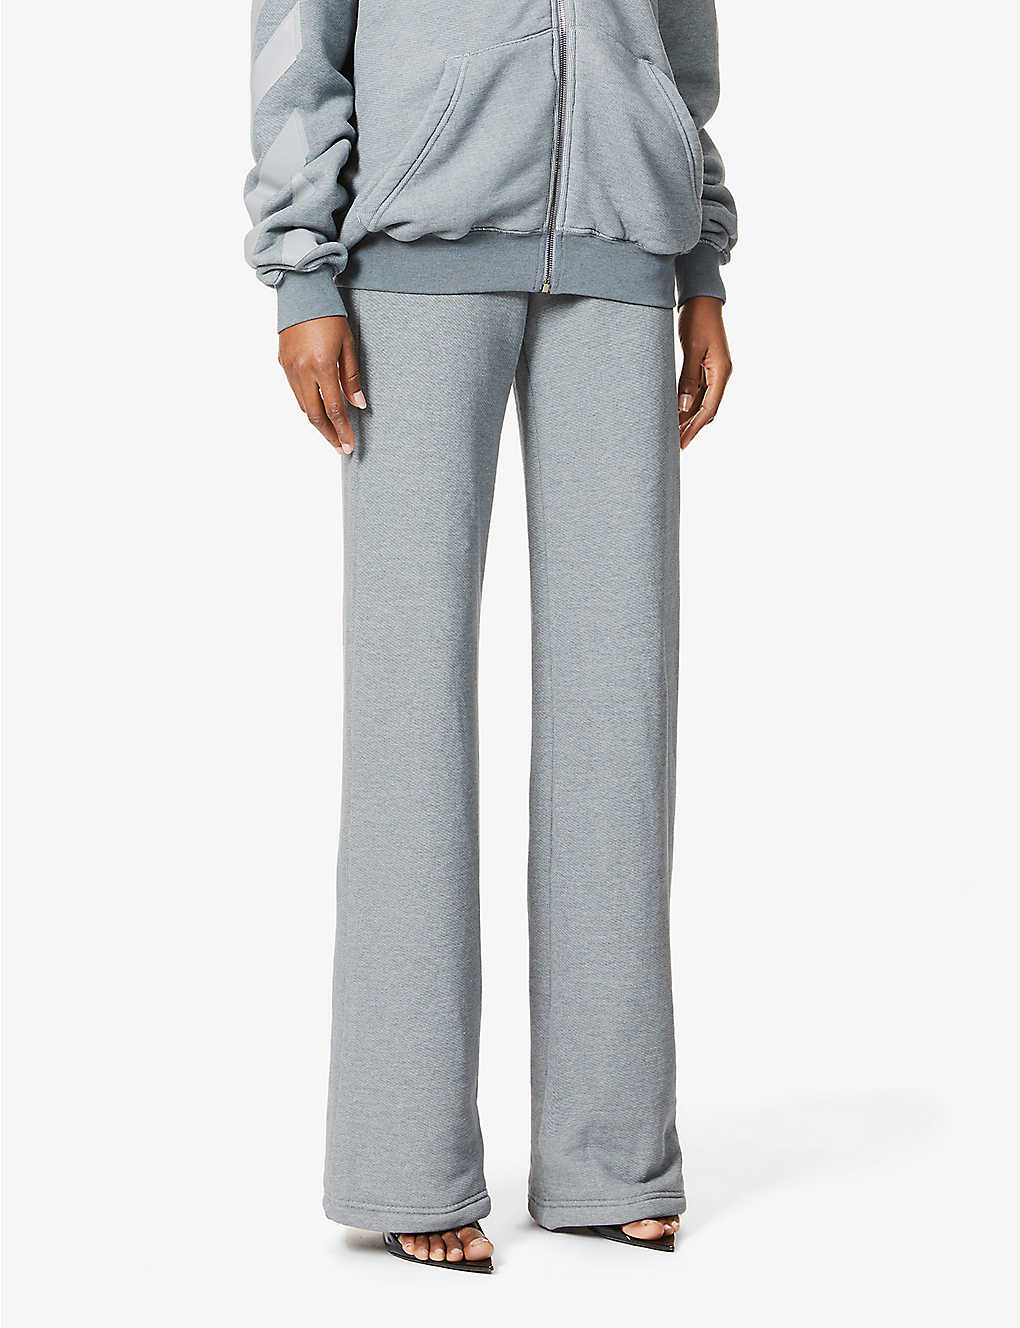 OFF-WHITE C/O VIRGIL ABLOH: Diagonal stiped cotton-jersey jogging bottoms